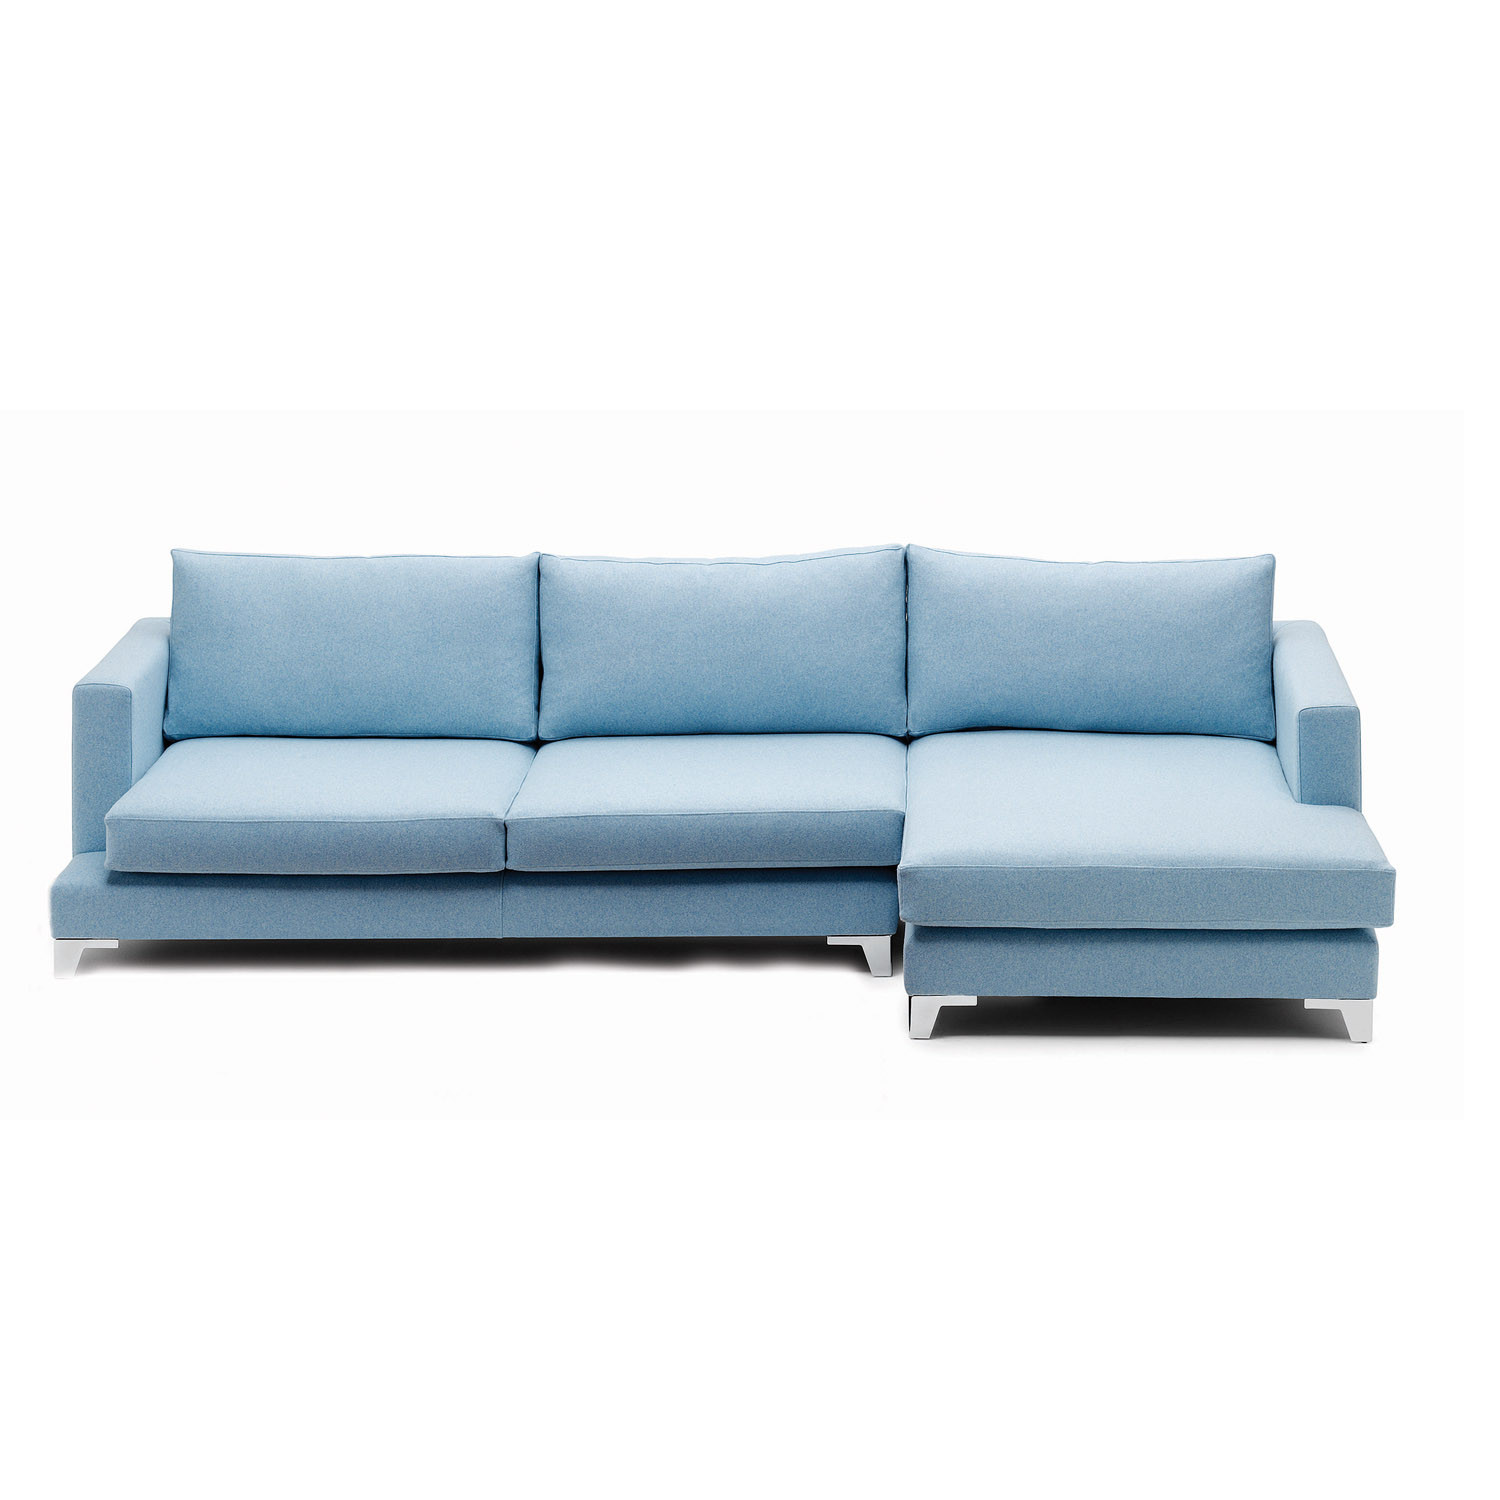 Olivia Sofa and Chaise